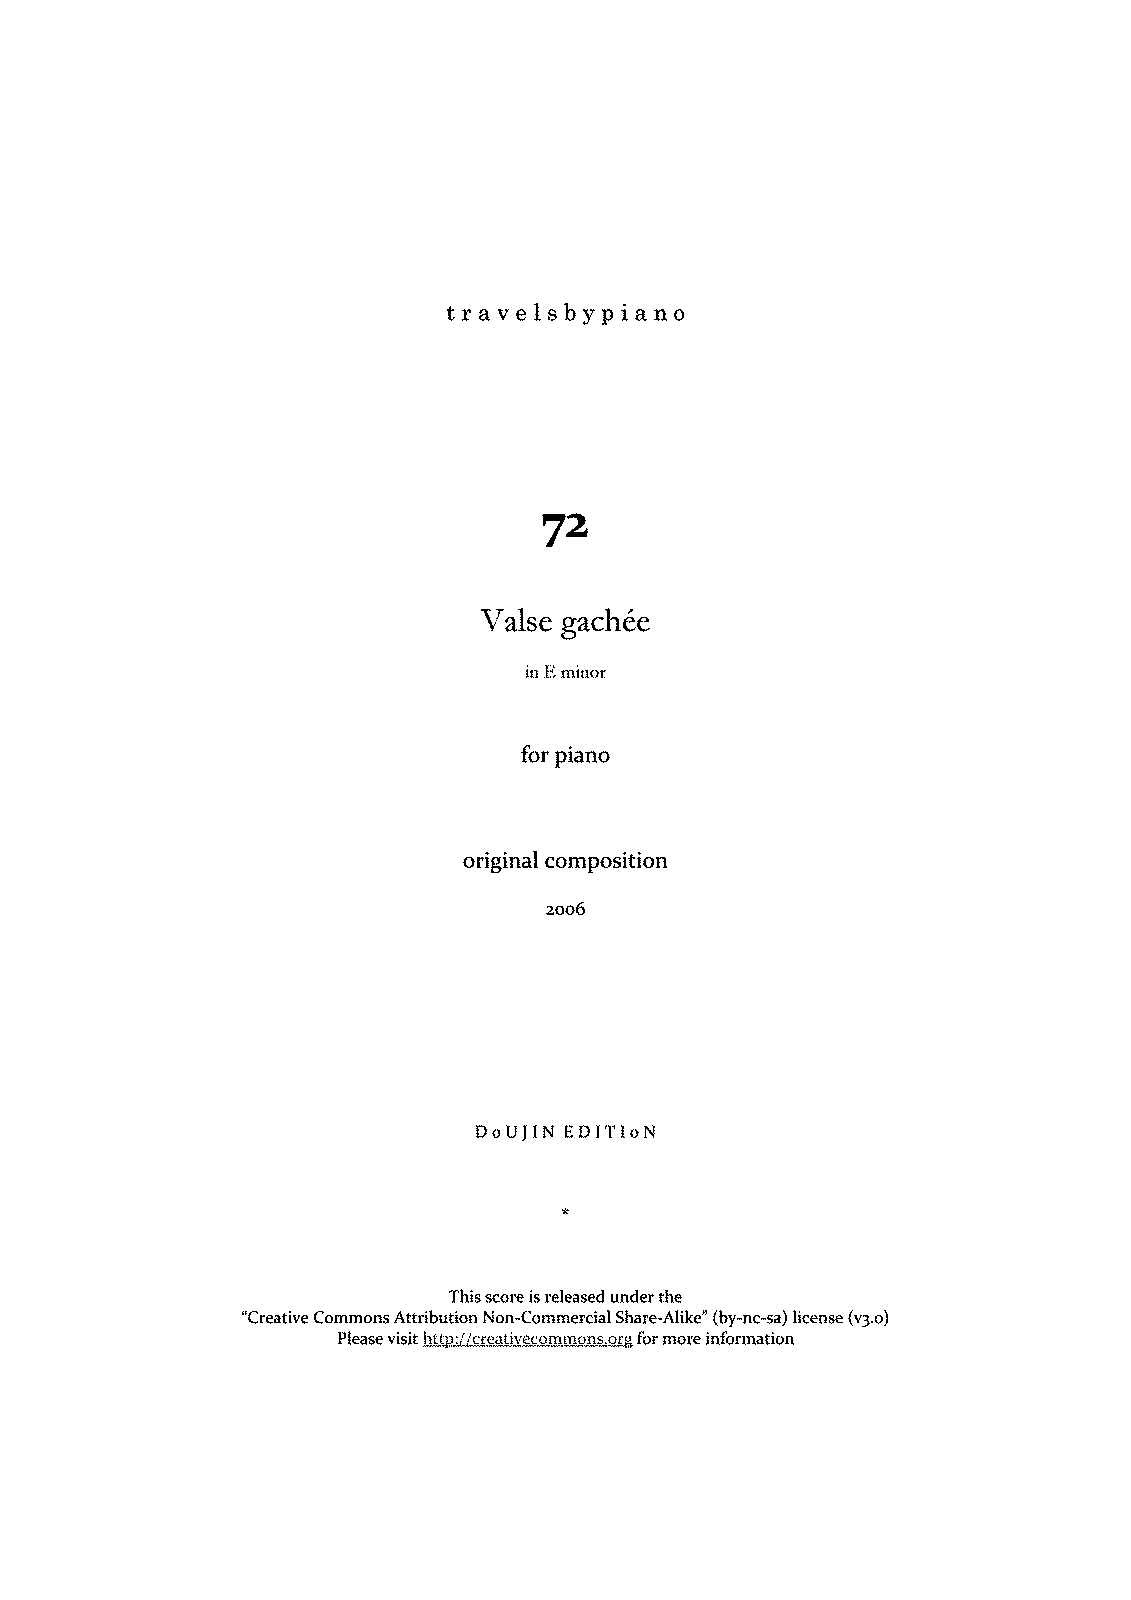 PMLP223374--travelsbypiano- tbp72 Valse gachée in E minor -78679A04-.pdf